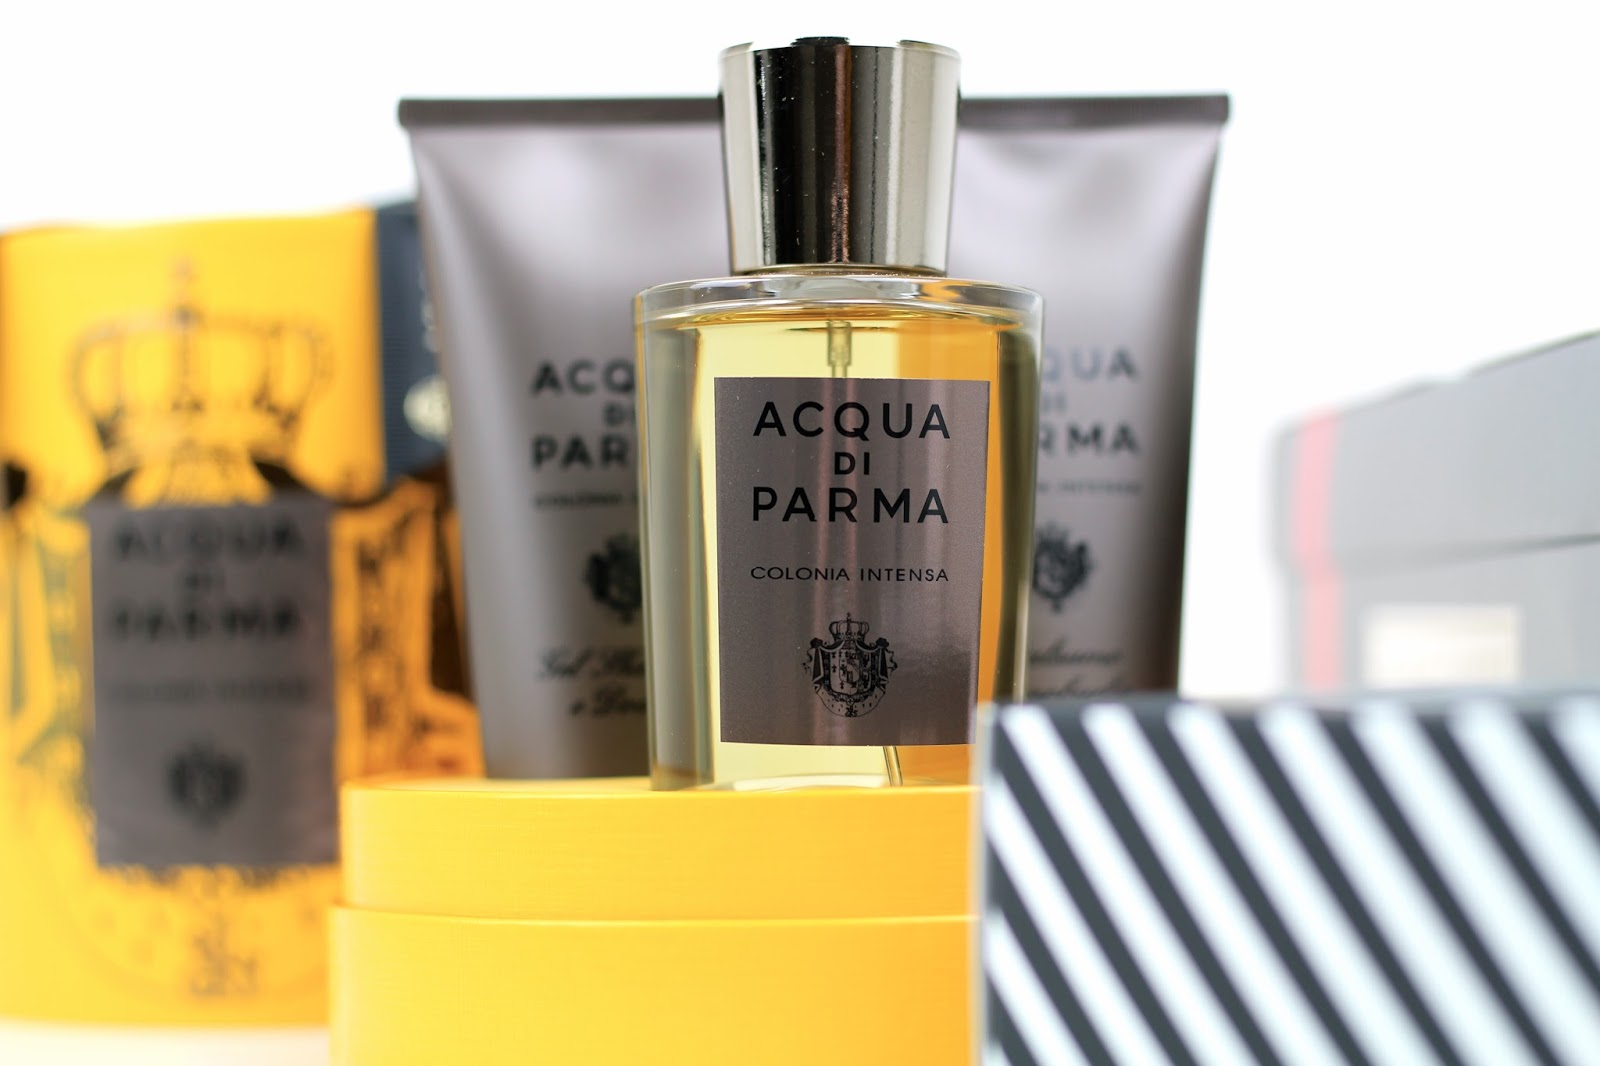 Acqua di Parma unisex colonia intensa gift set